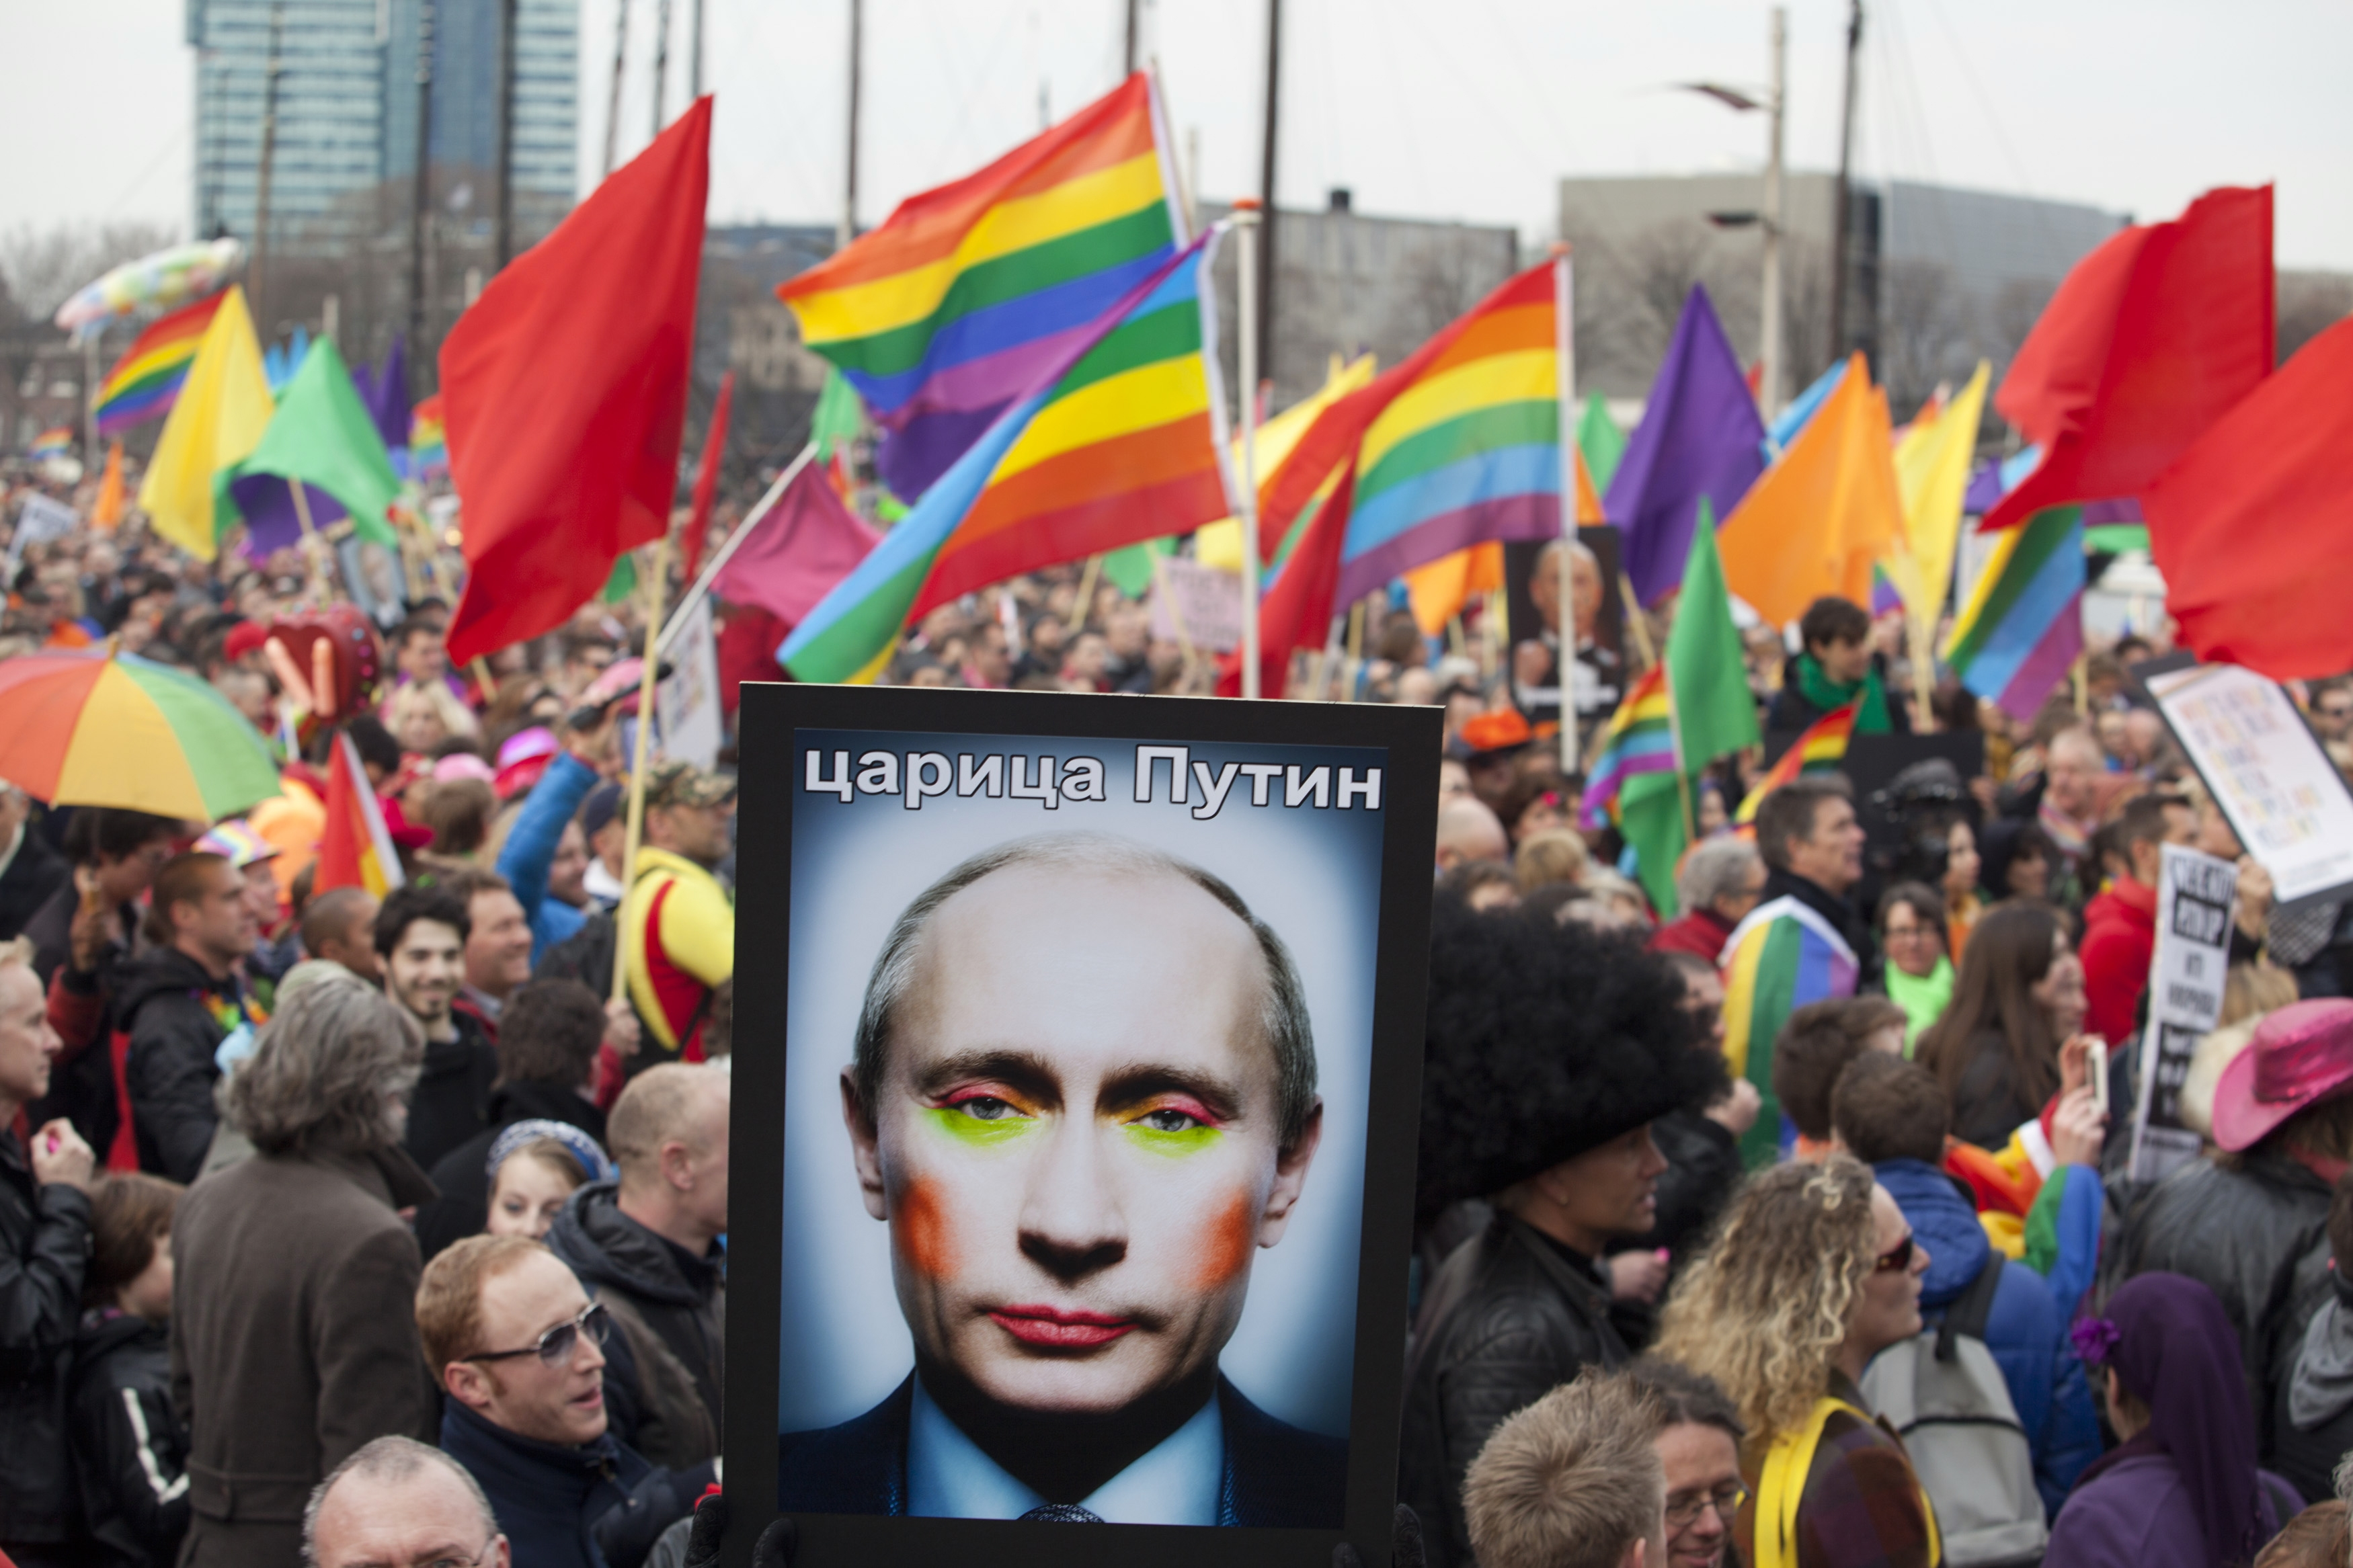 Putin's poster in protest against anti-gay russian law